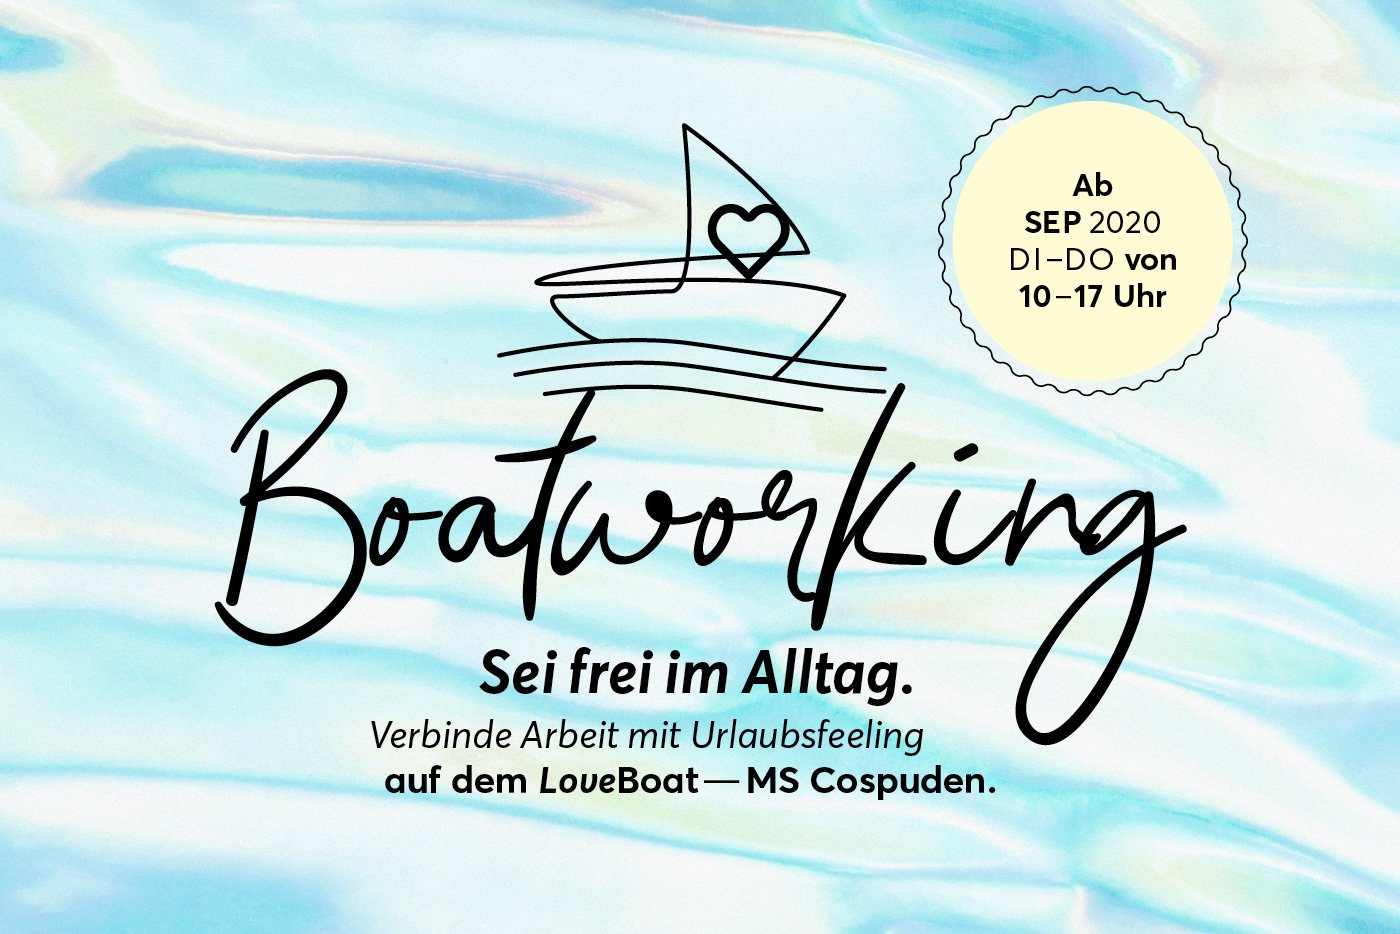 Boatworking, Coworking auf dem LoveBoat, MS Cospuden, Leipzig, ab 7. September 2020